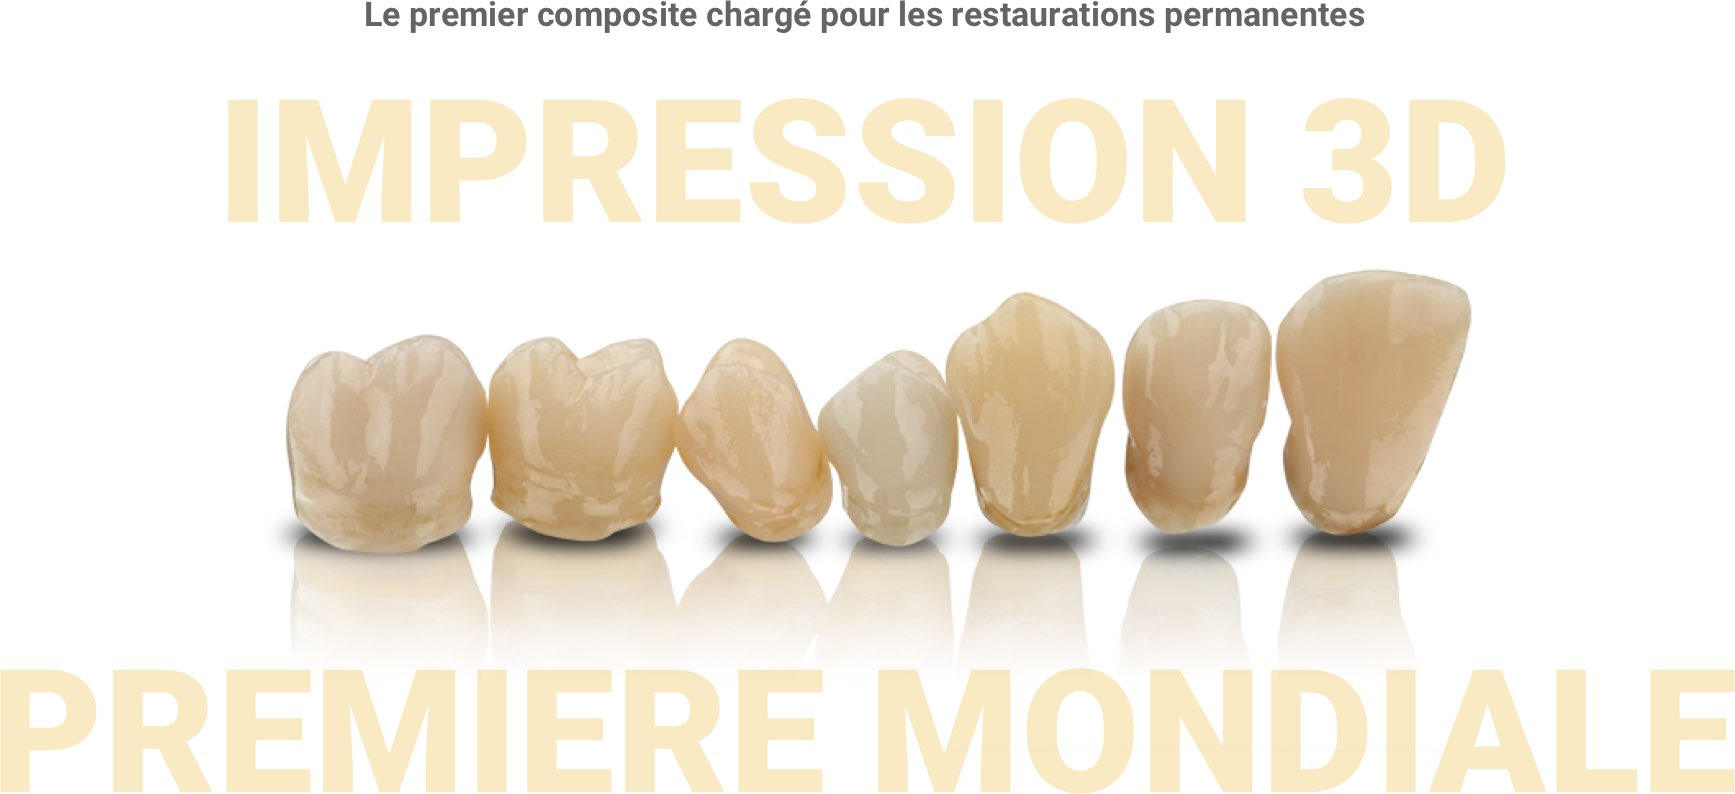 VarseoSmile Crown plus — Le premier composite chargé pour les restaurations permanentes